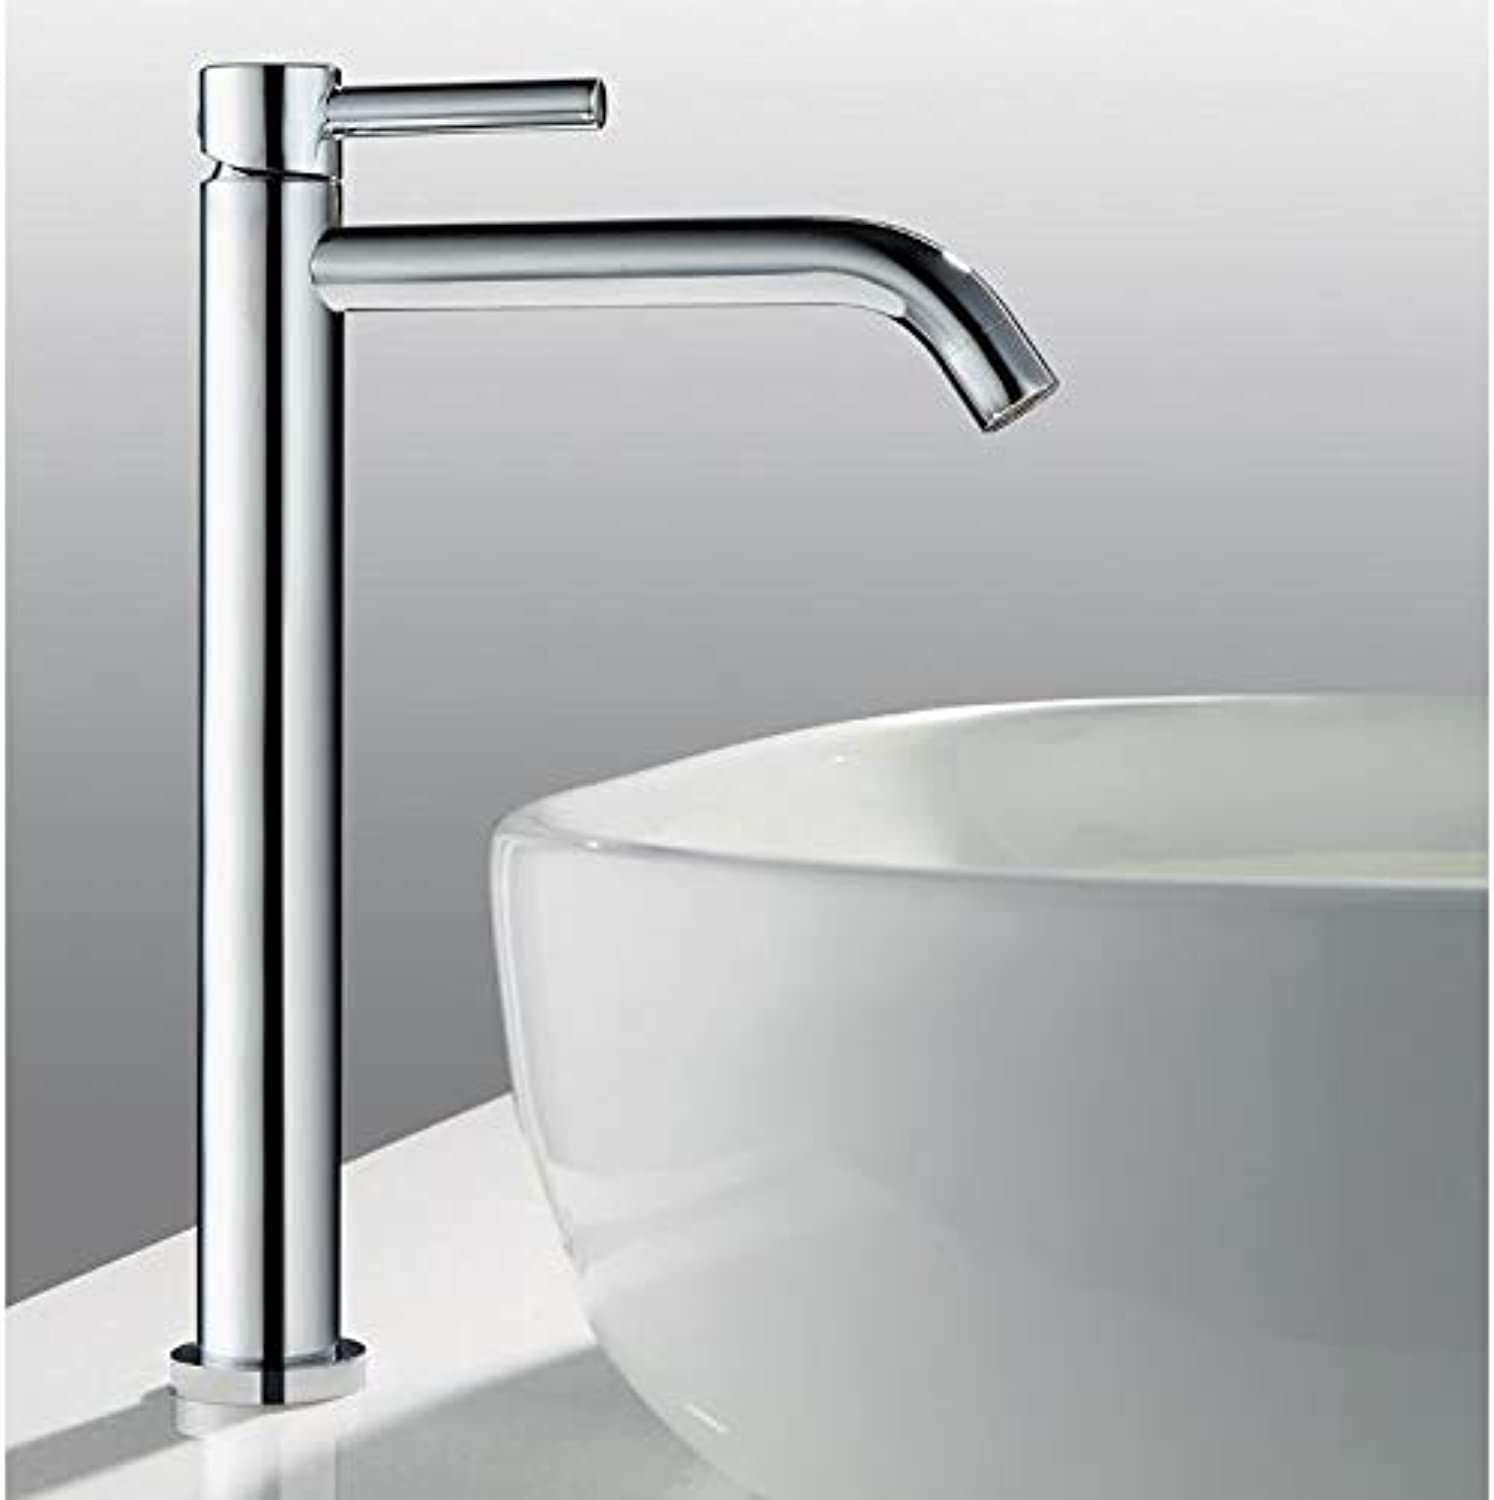 YUELIFE Bathroom Sink Tap Single Level Hot and Cold Chrome Finished